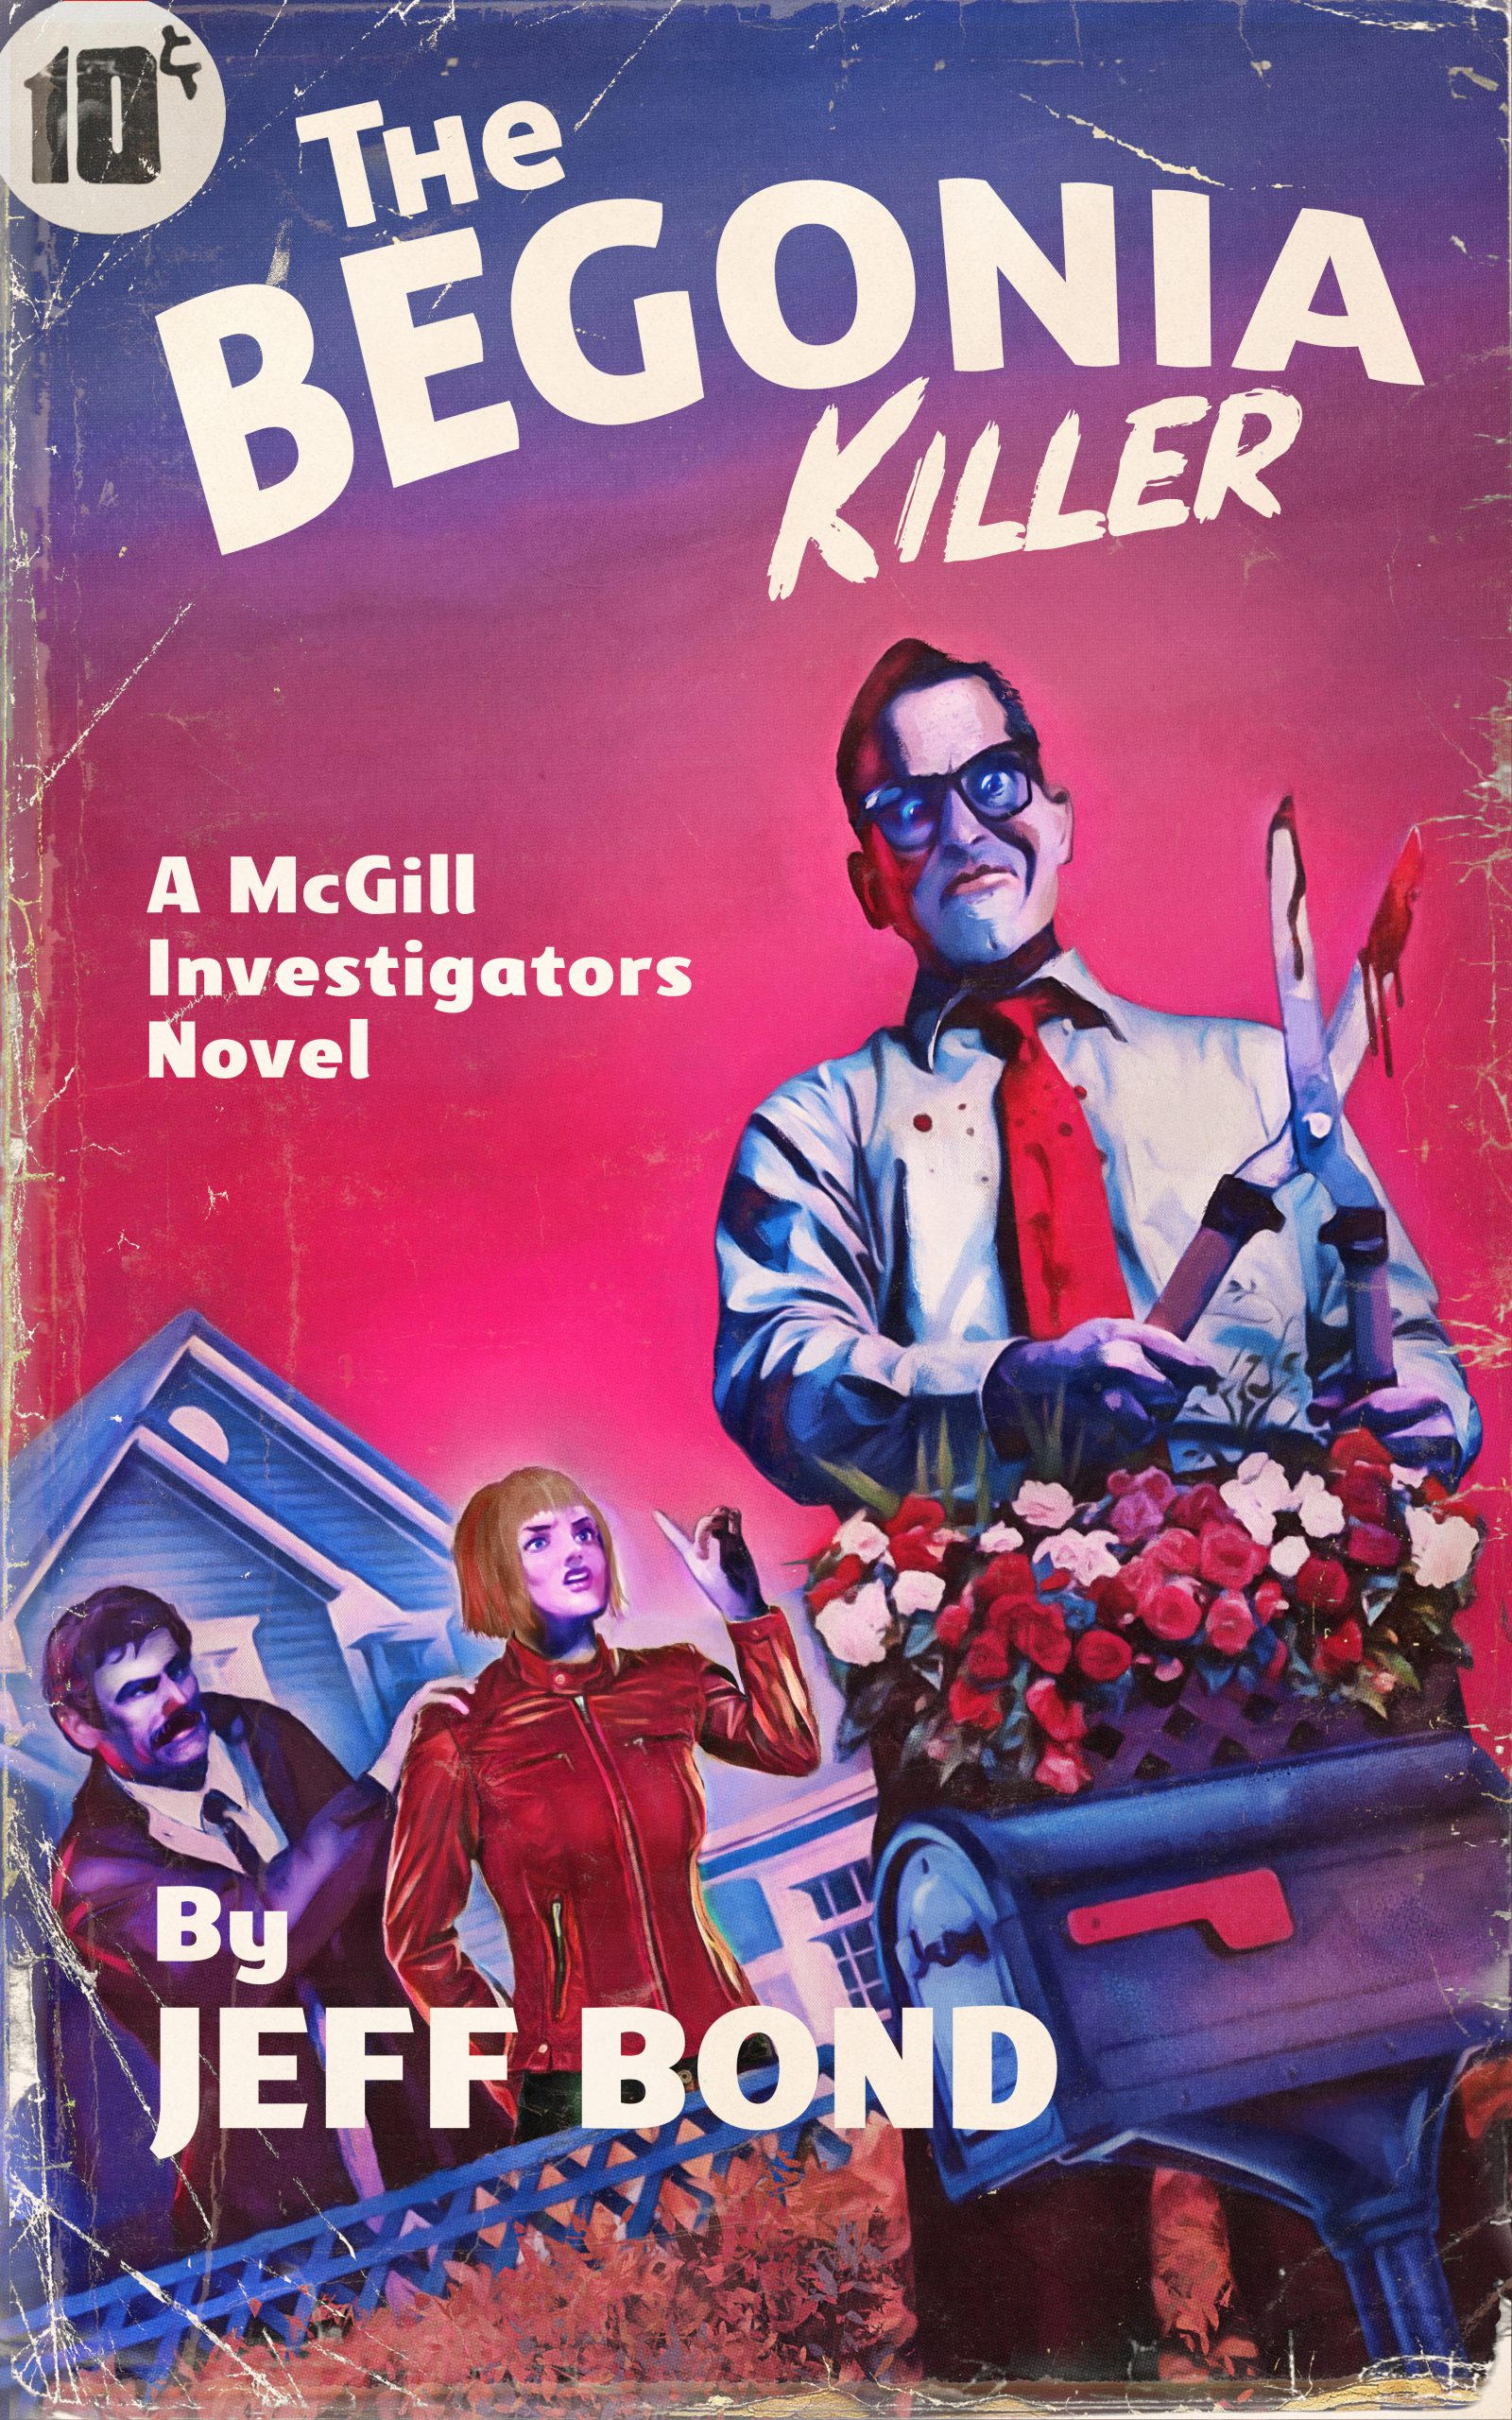 The Begonia Killer by Jeff Bond